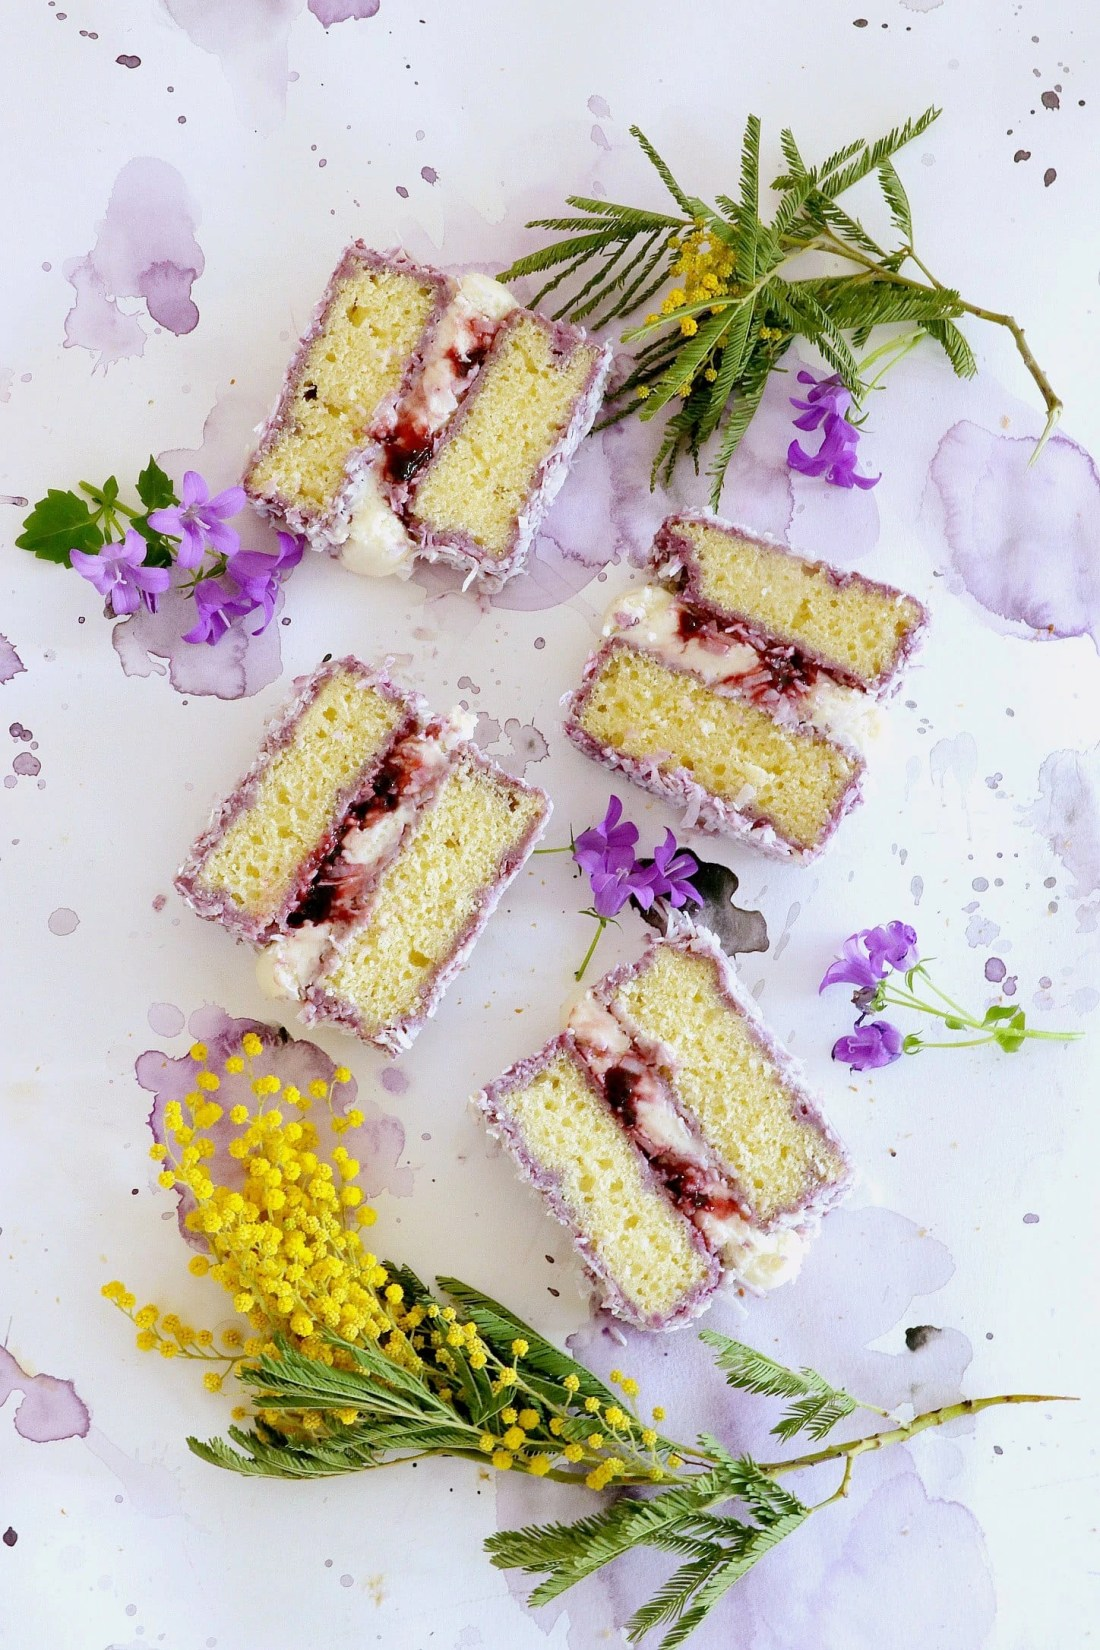 Blackcurrant and Coconut Lamingtons